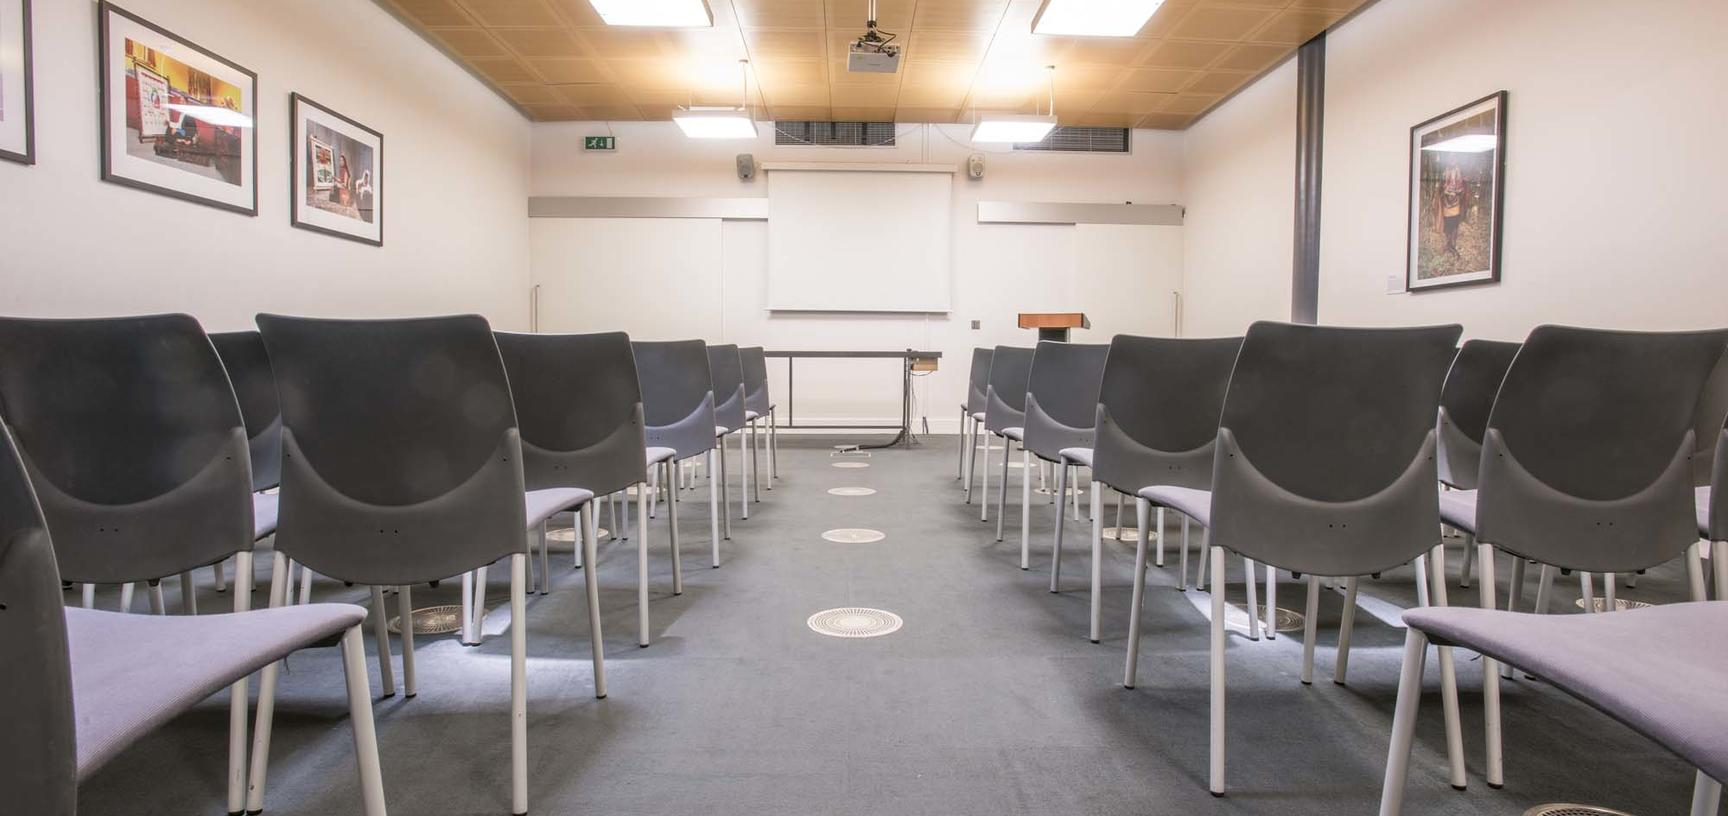 Chairs in meeting room